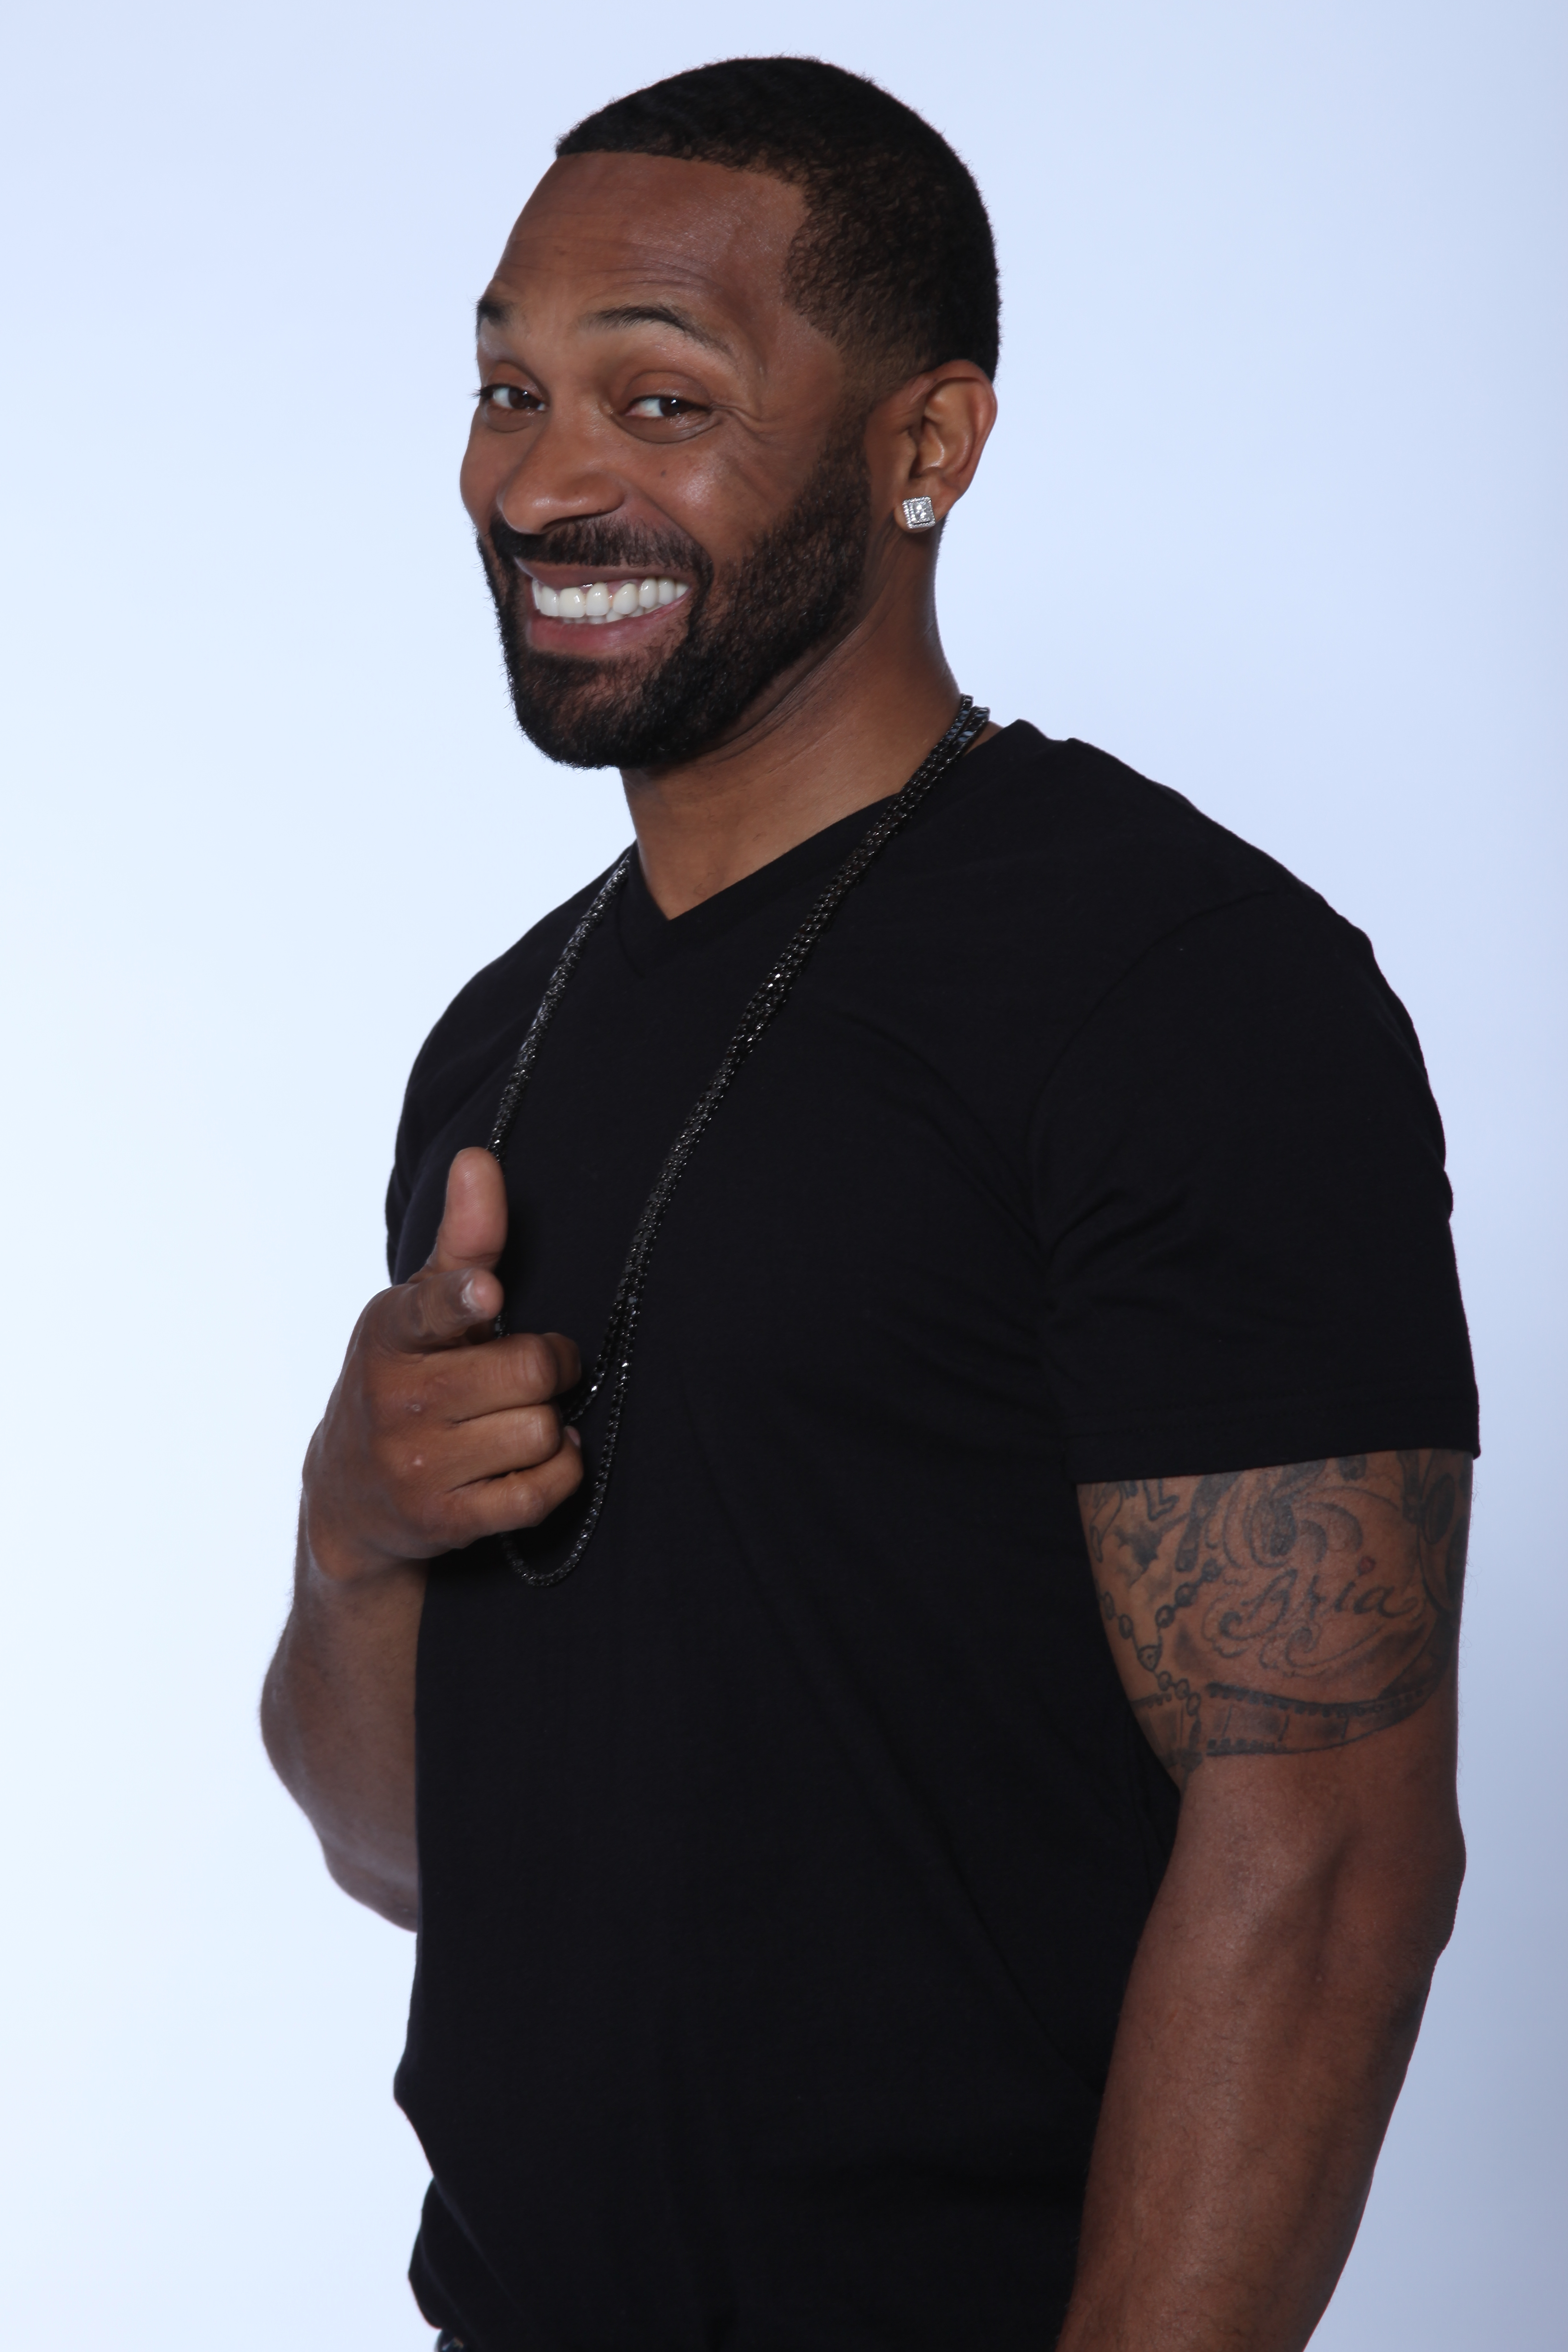 mike epps the cuddlermike epps movies, mike epps net worth, mike epps height, mike epps wiki, mike epps instagram, mike epps films, mike epps rap, mike epps stand up, mike epps omar epps, mike epps eminem, mike epps meet the black, mike epps, mike epps tickets, mike epps new movie, mike epps imdb, mike epps youtube, mike epps netflix, mike epps comedy tour, mike epps family, mike epps the cuddler